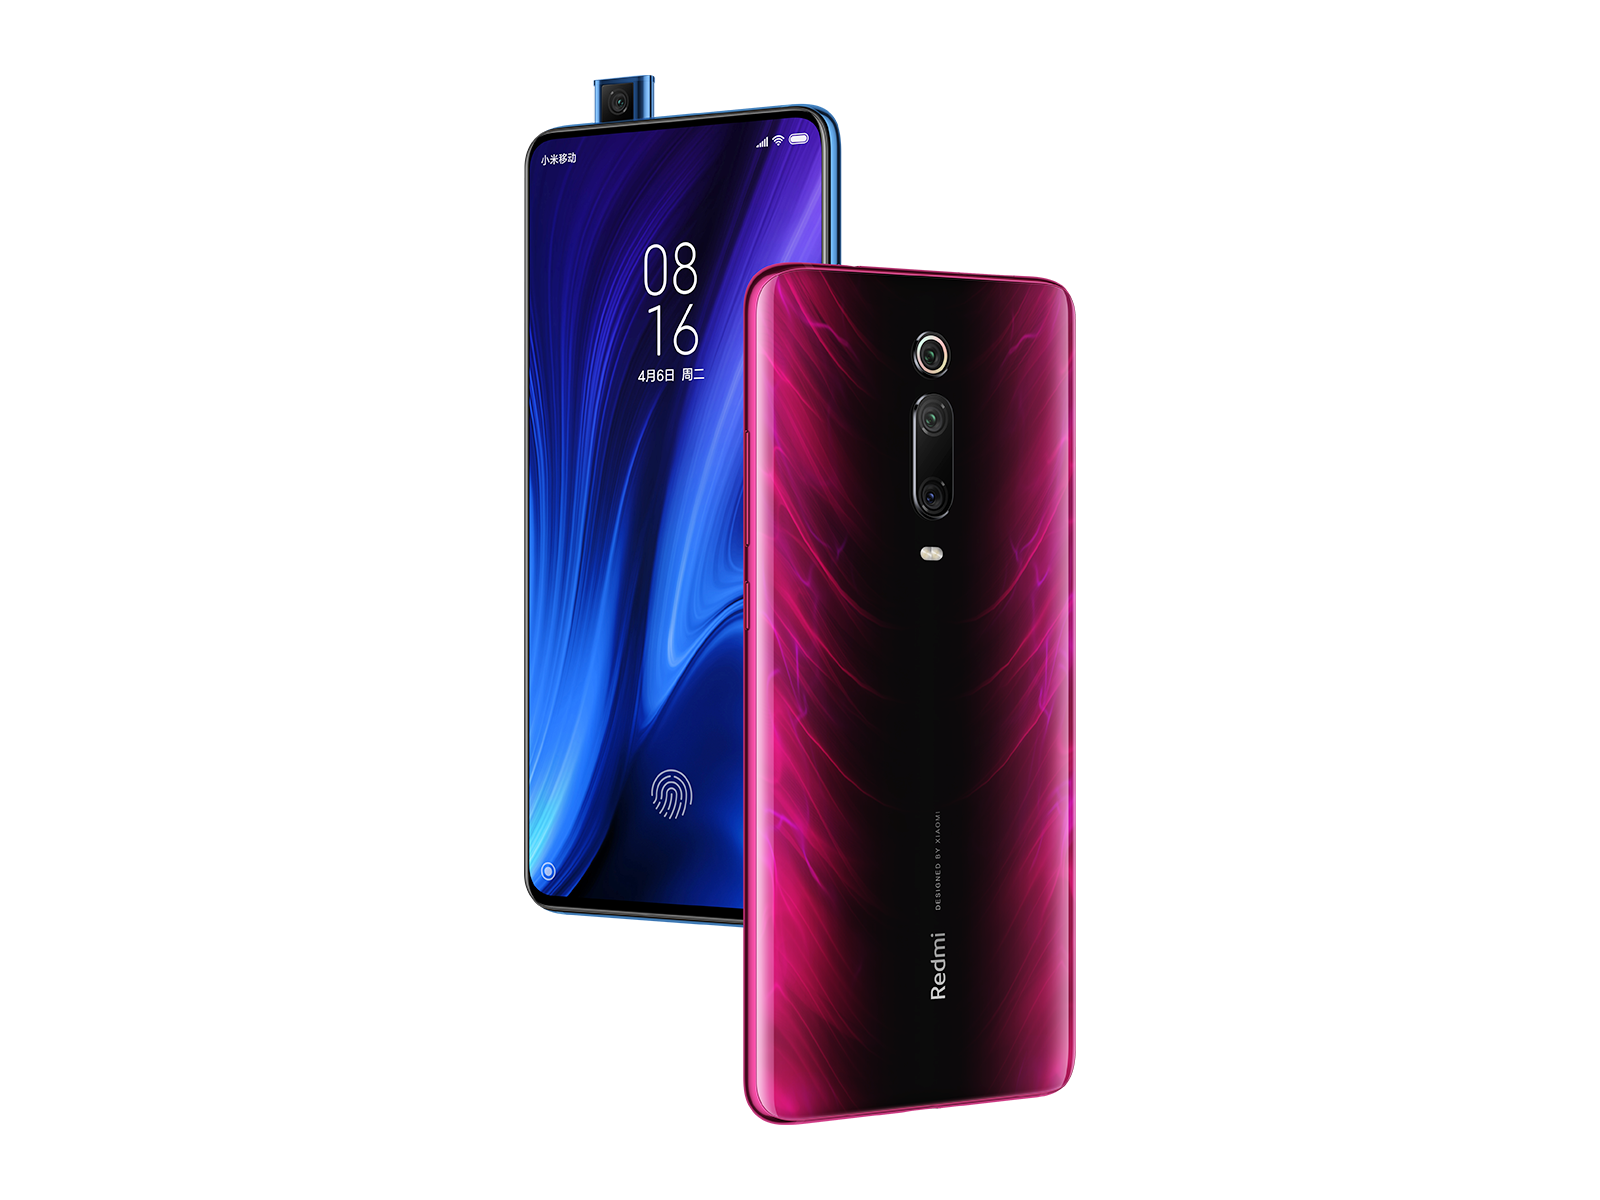 Redmi's new K20 Pro packs a Snapdragon 855, pop-up camera, and costs